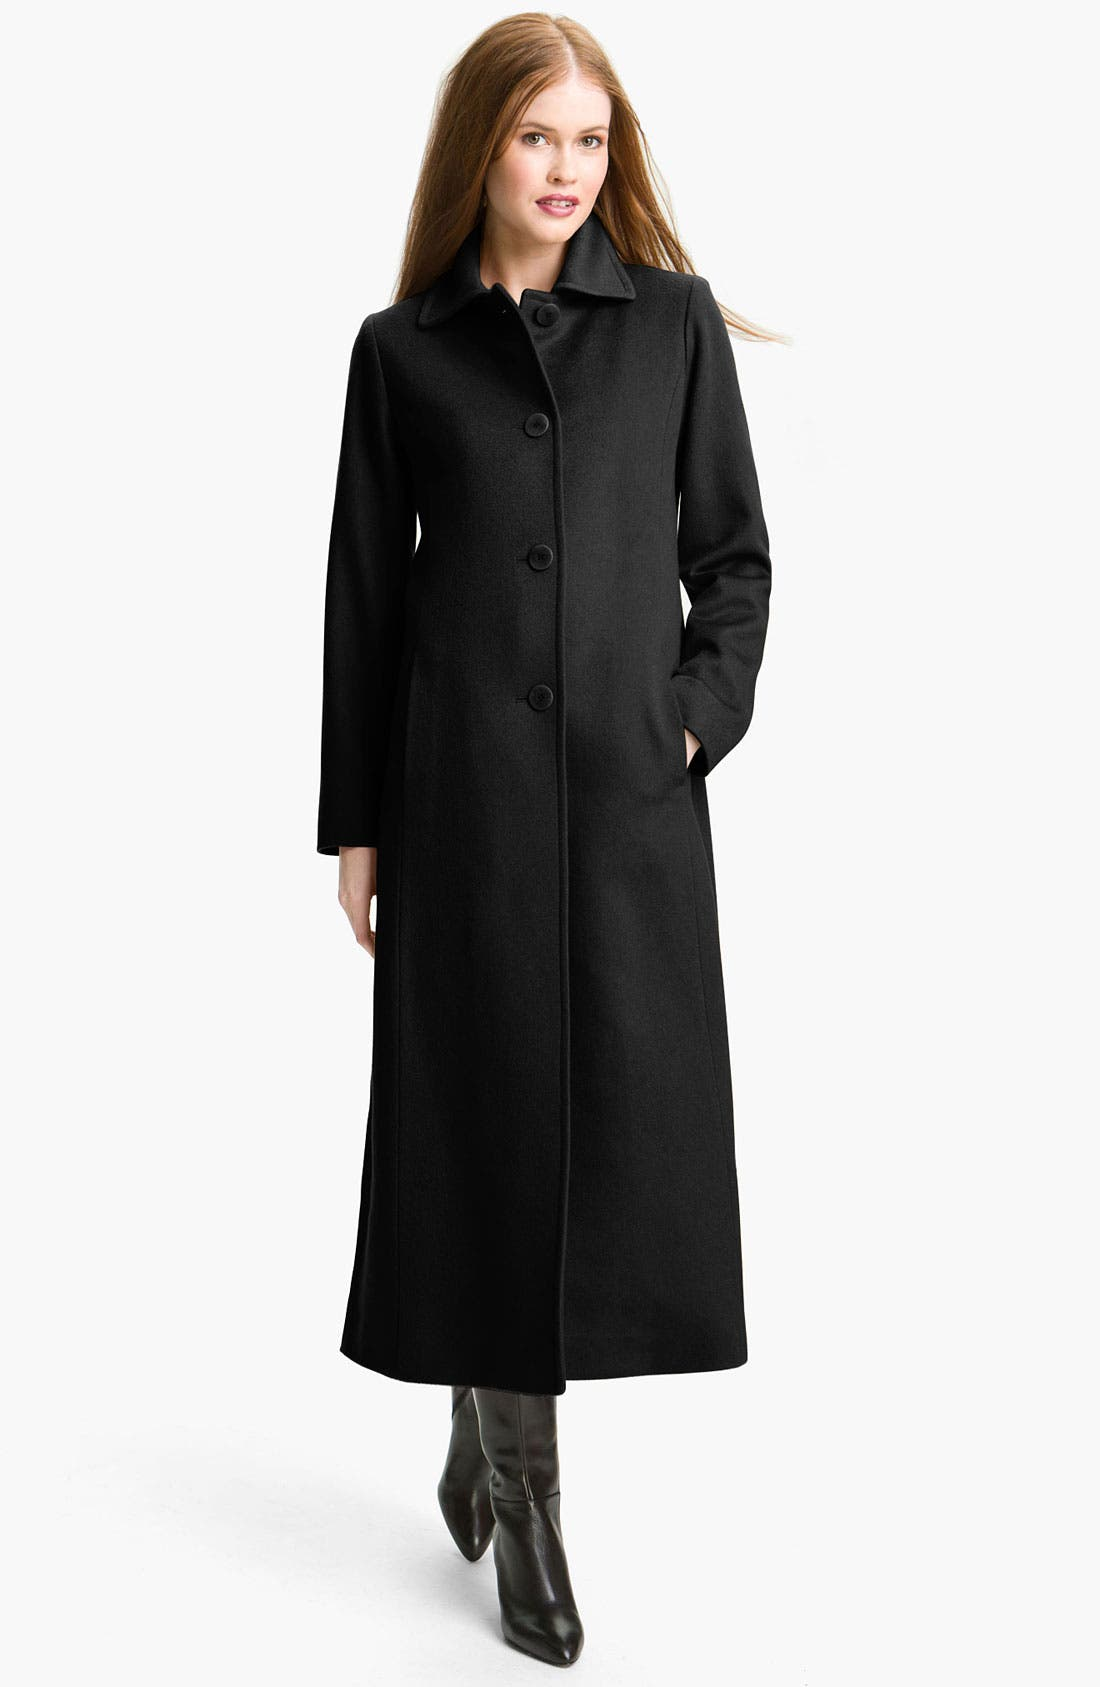 Main Image - Fleurette Single Breasted Cashmere Coat